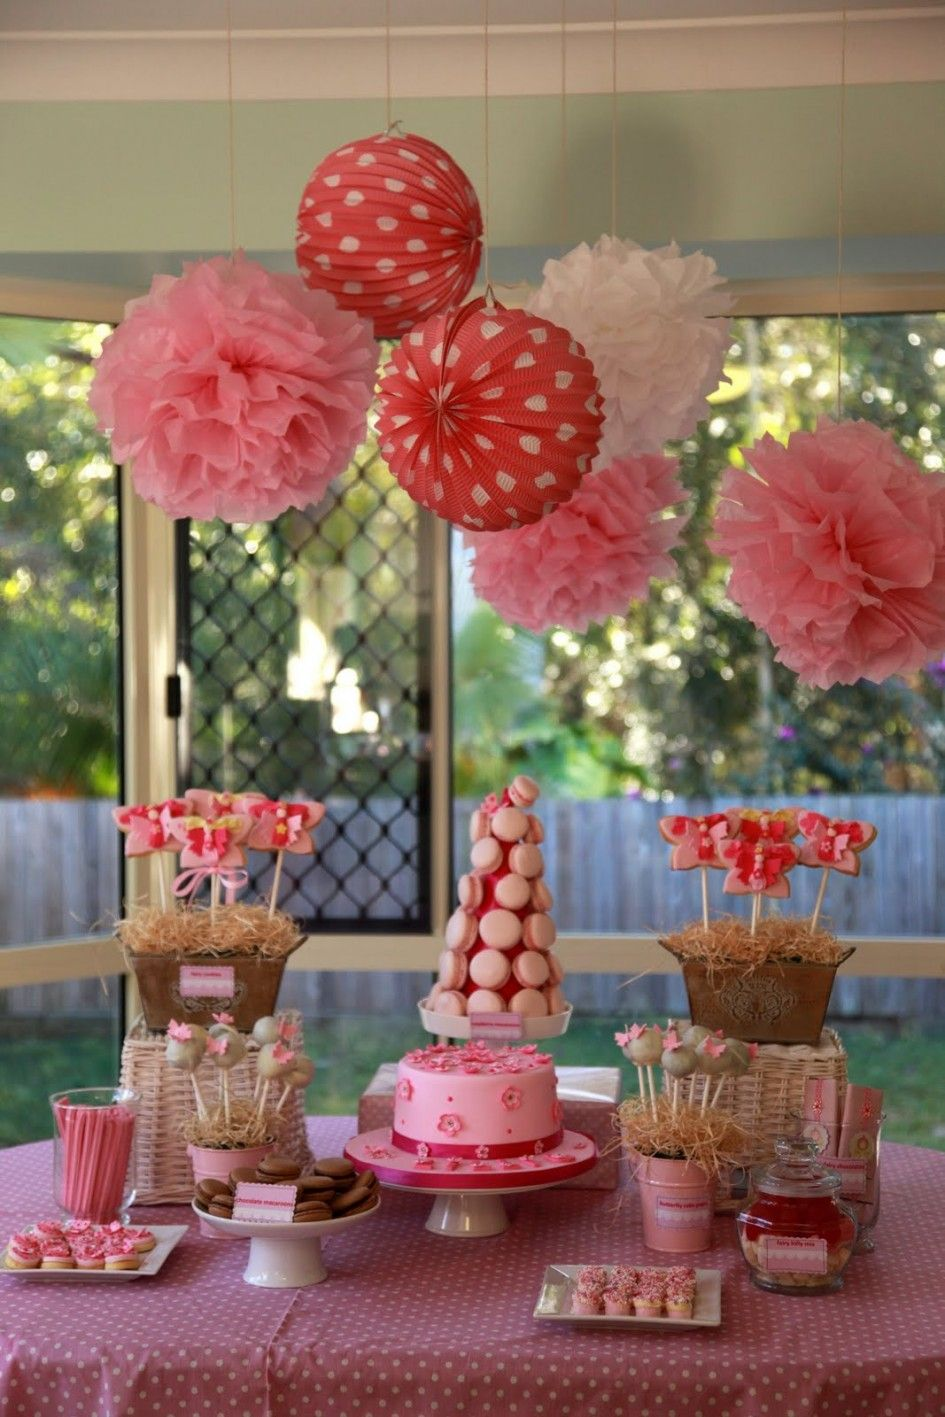 Inspiring Ideas for Stunning Table Decorations for Birthdays : Excellent  Decorations Design: Wonderful Pink Table